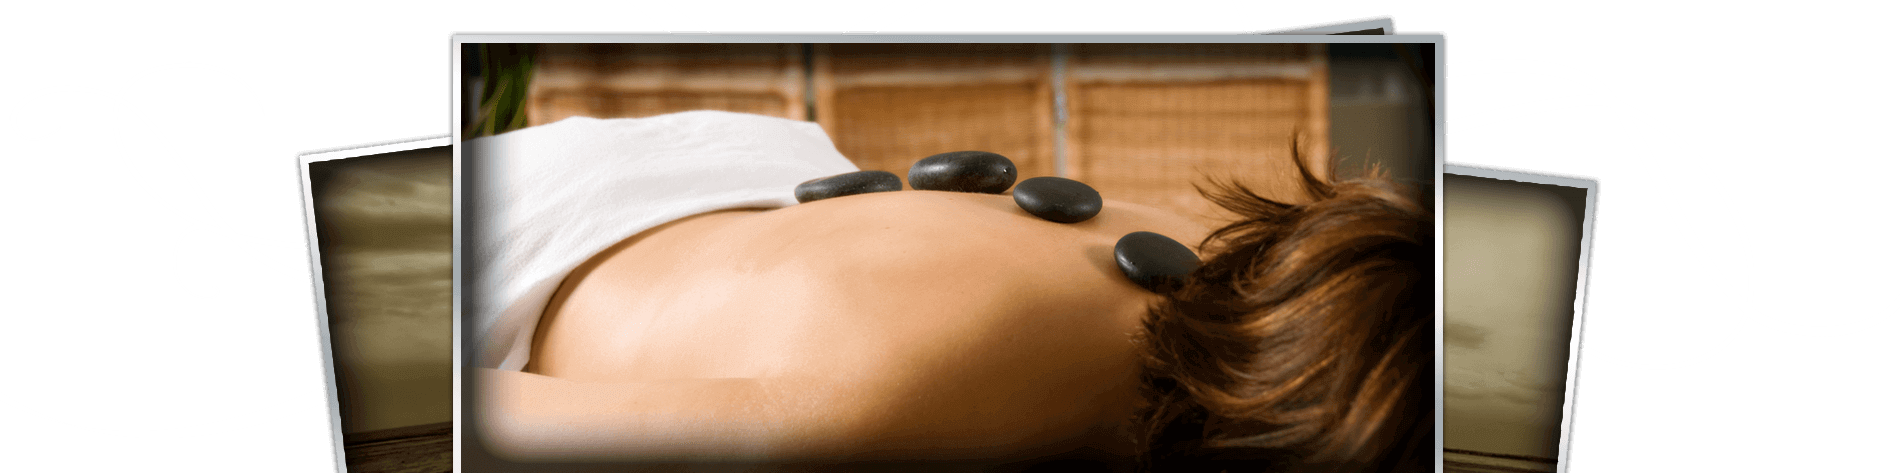 Woman recieving hot stone massage